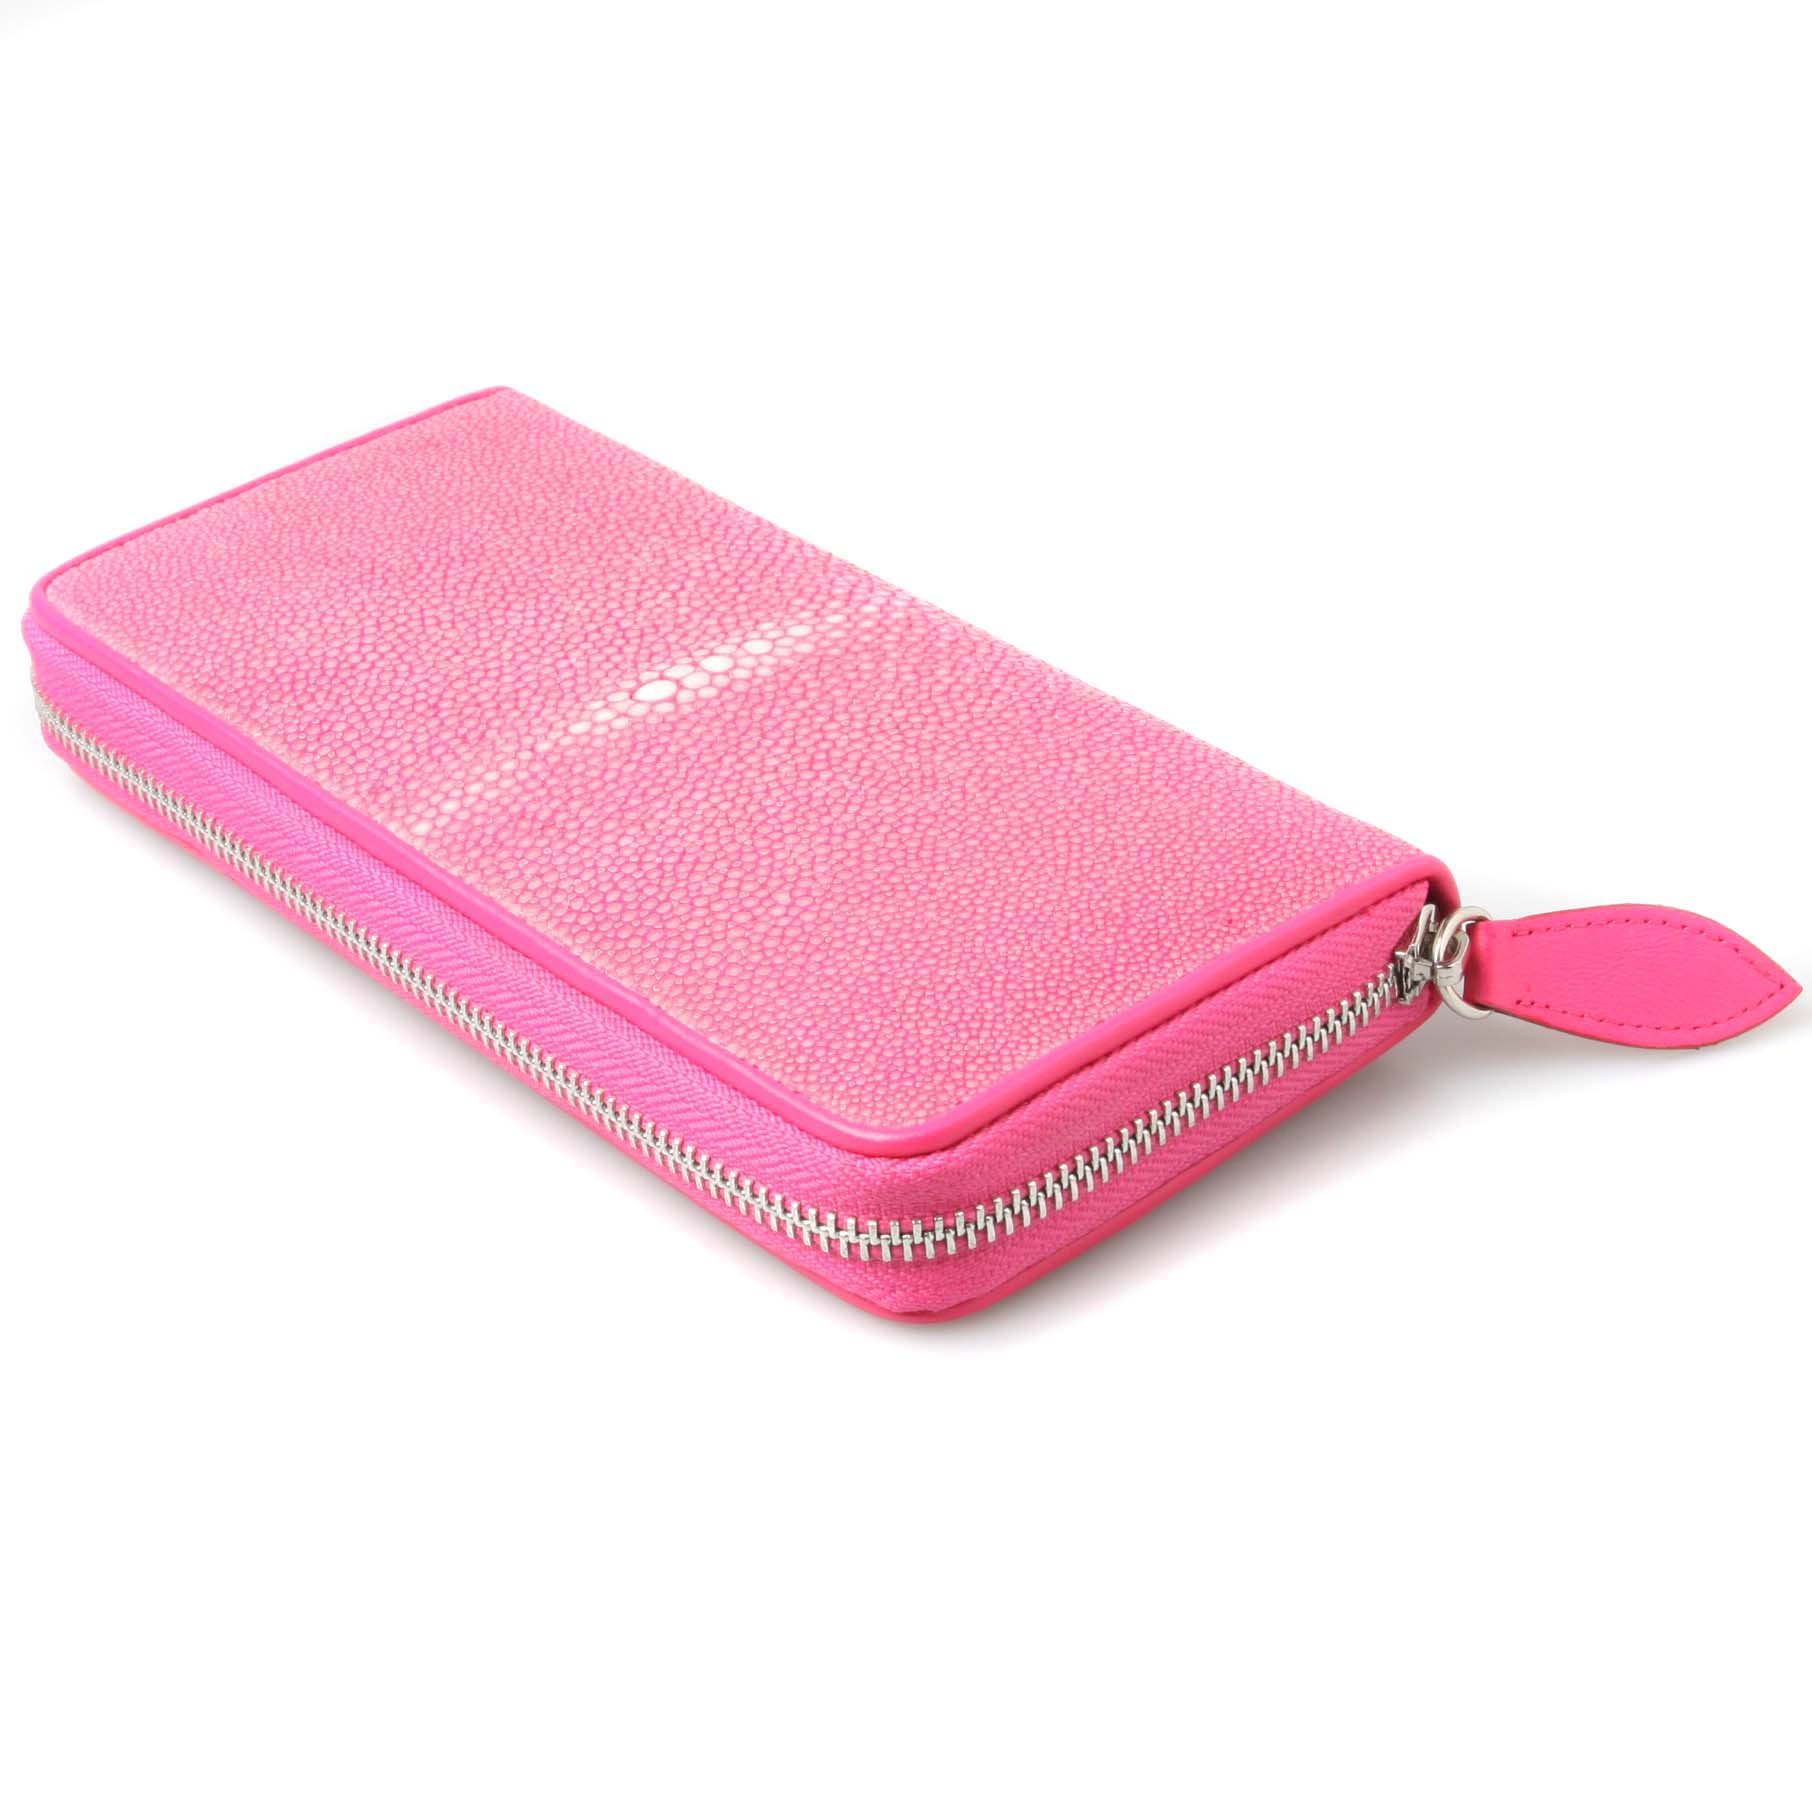 Genuine Polished Stingray Leather Pink Clutch Women Zip Around Coin Wallet Purse